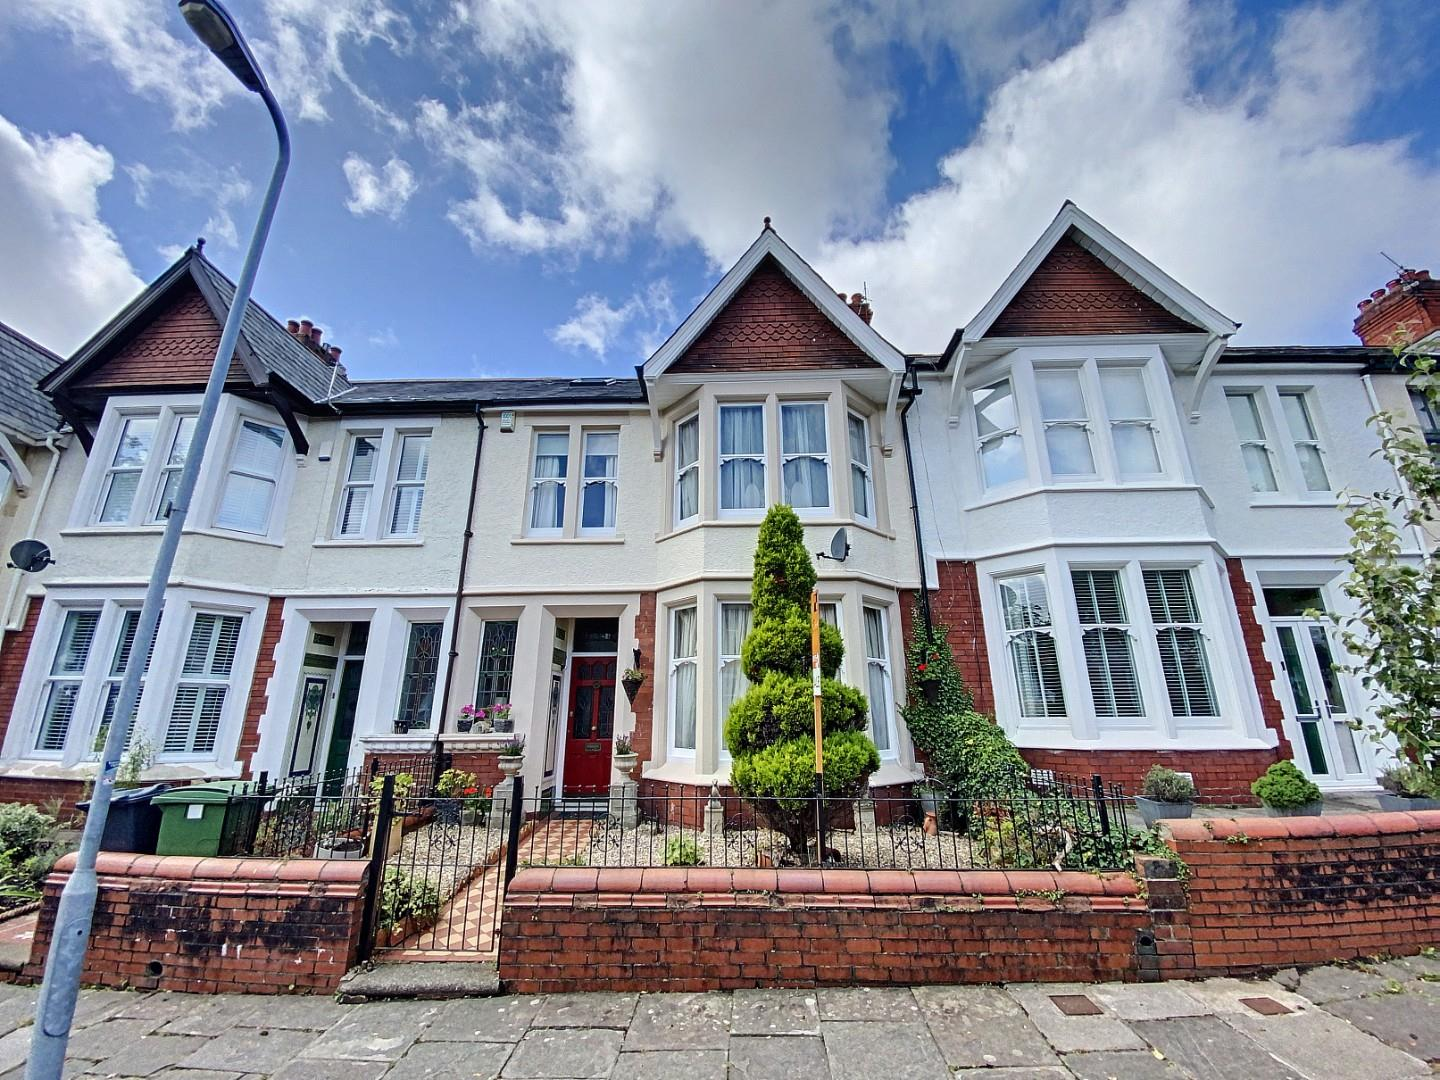 4 bed terraced house for sale in Pen-Y-Lan Terrace, Cardiff - Property Image 1